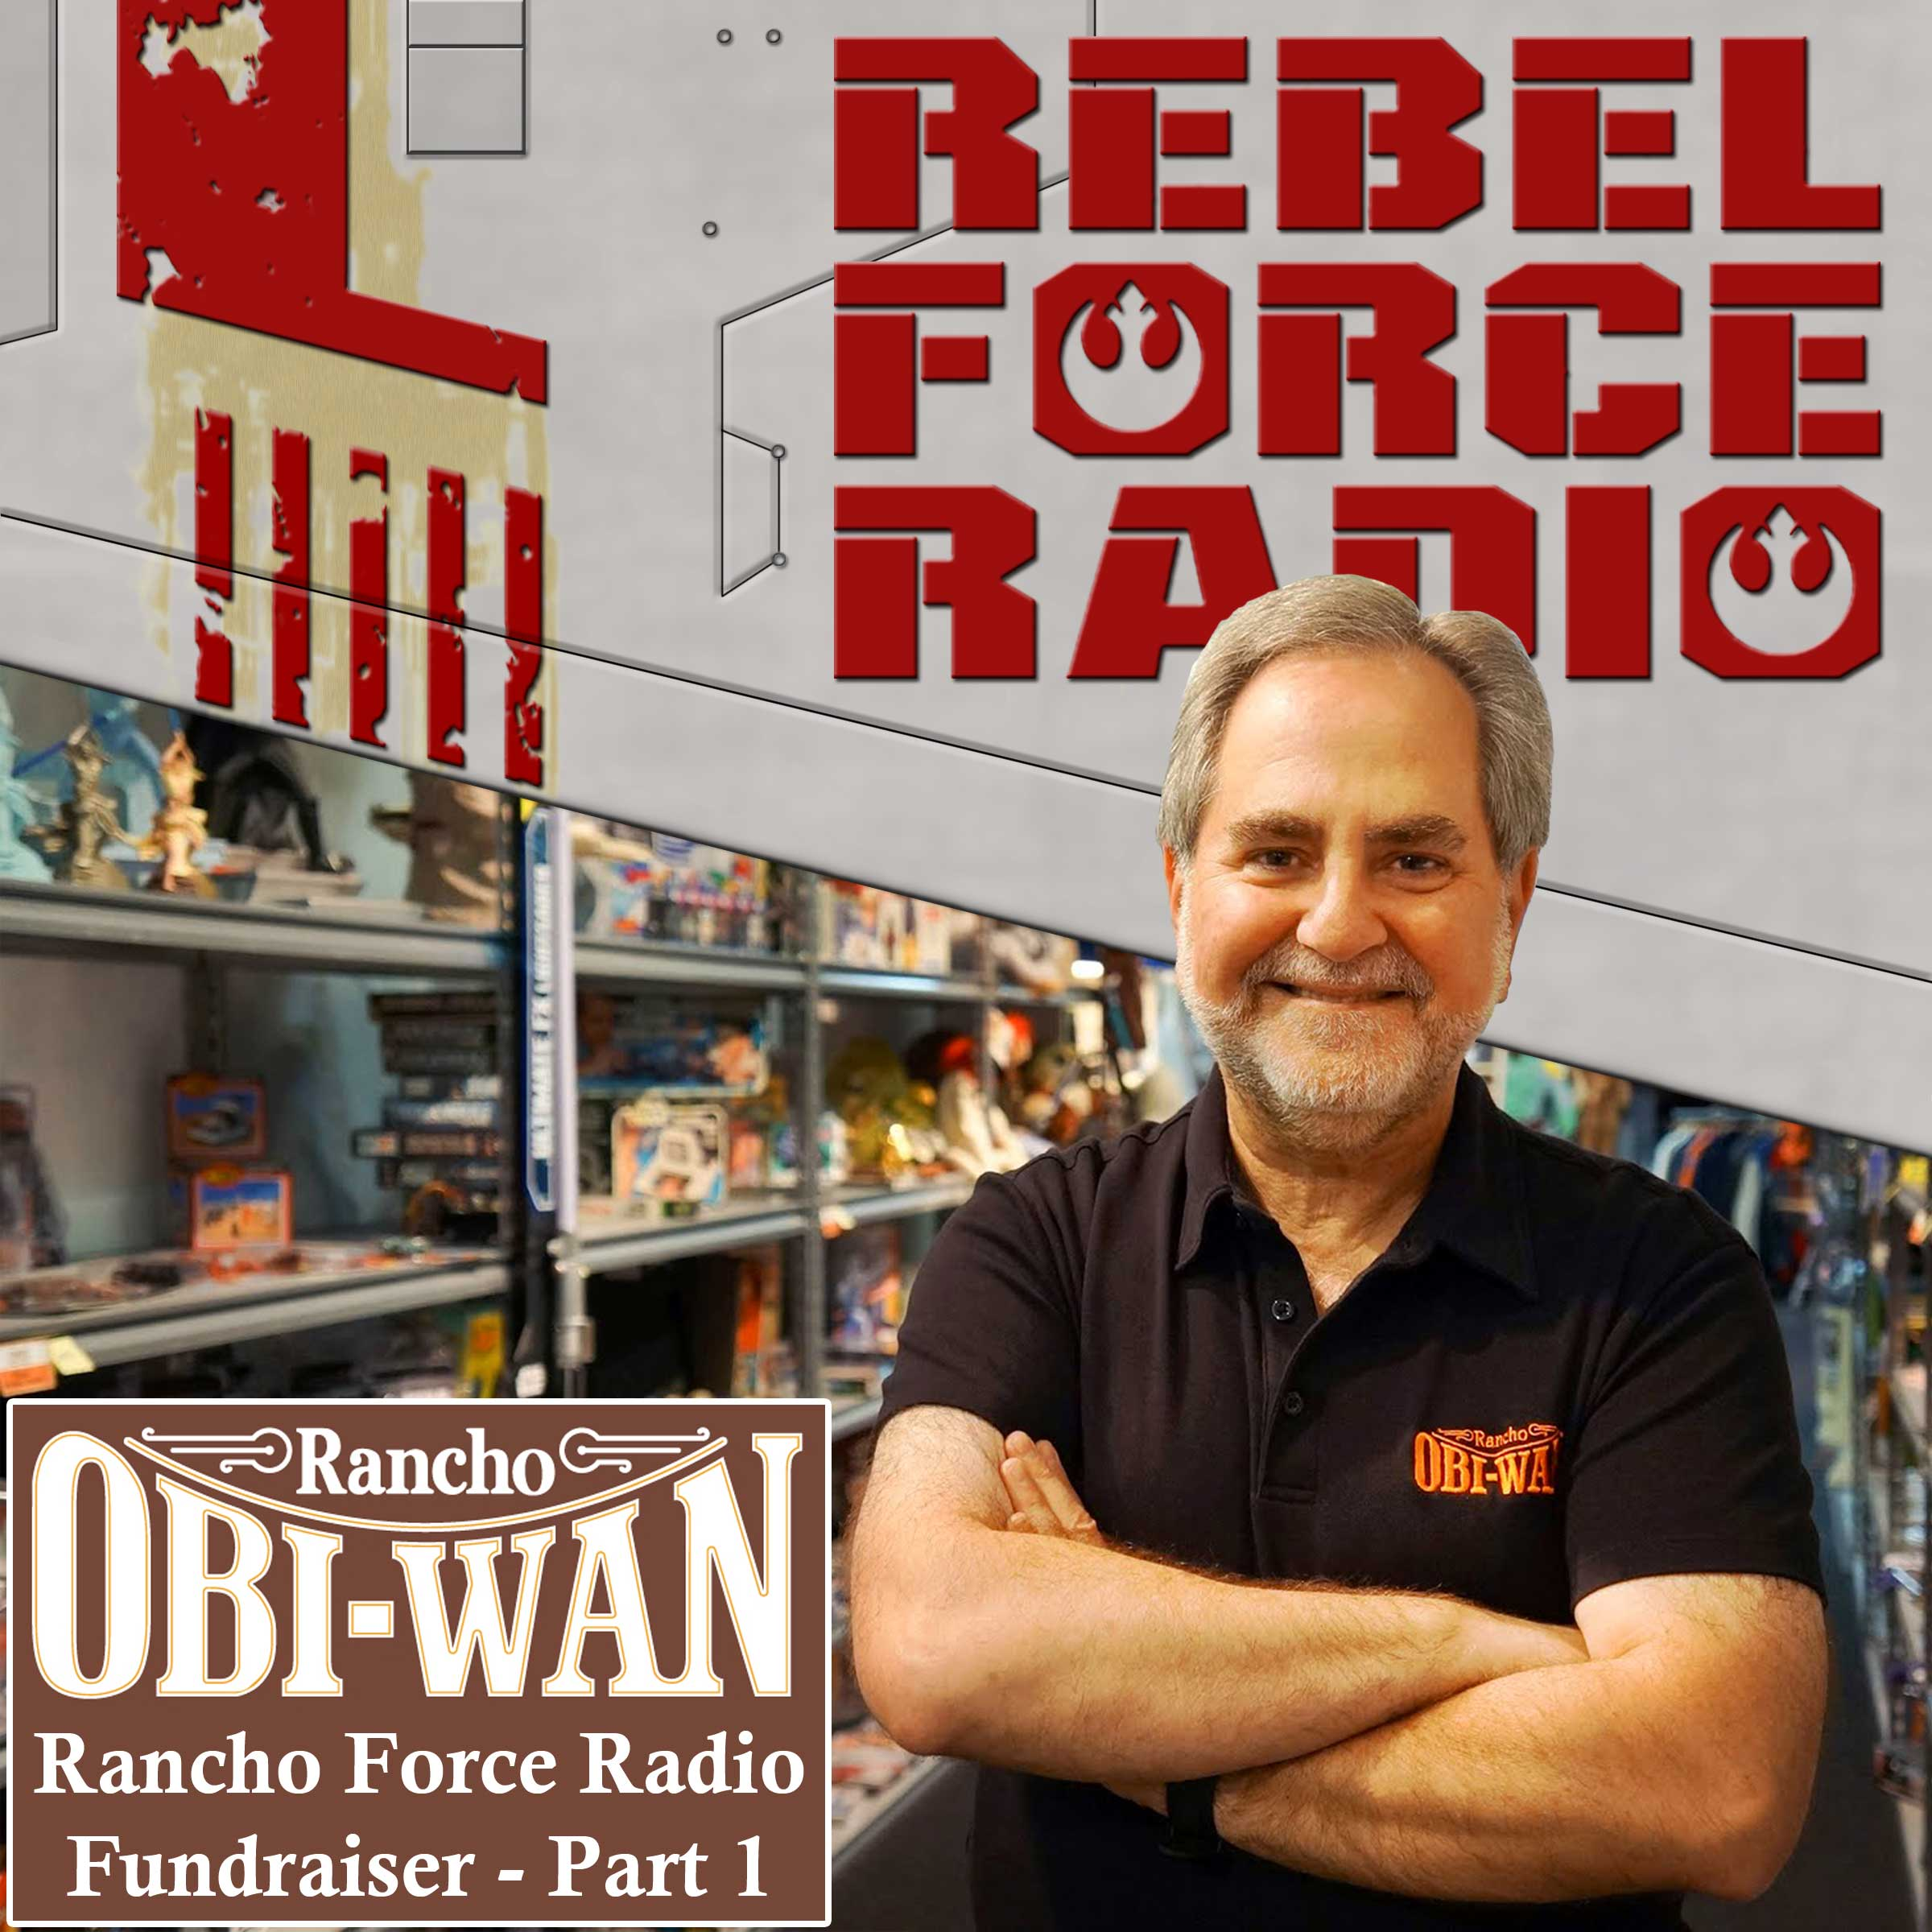 RFR Live from Rancho Obi-Wan: Part 1